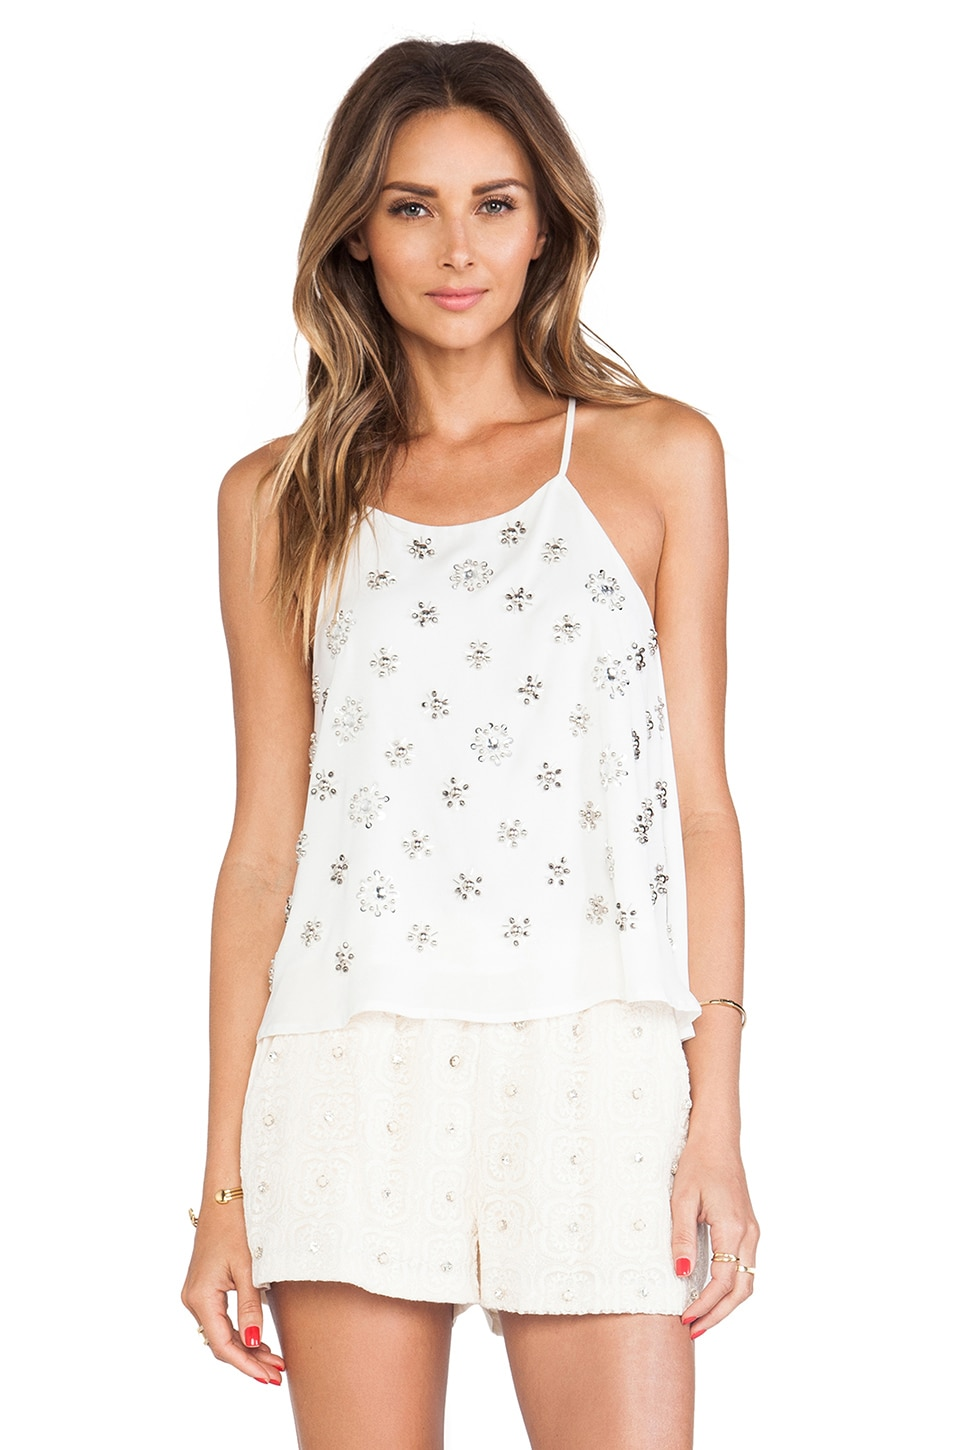 J.O.A. Embellished Cami Top in Off White